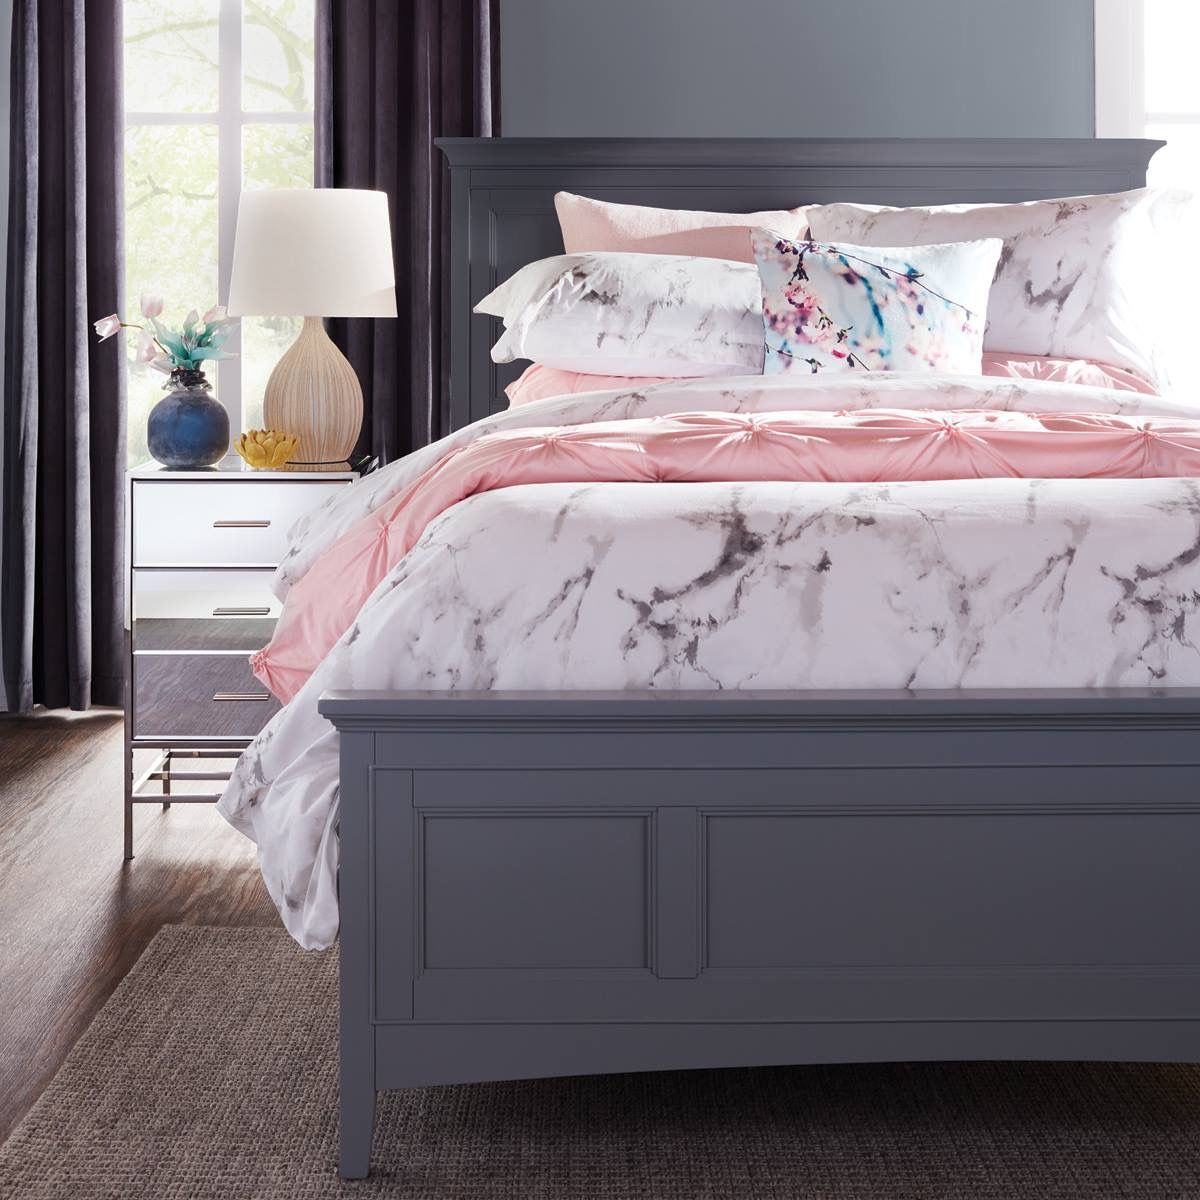 Pin by Kendalmikelewoots on Paige Barn bedrooms, Marble